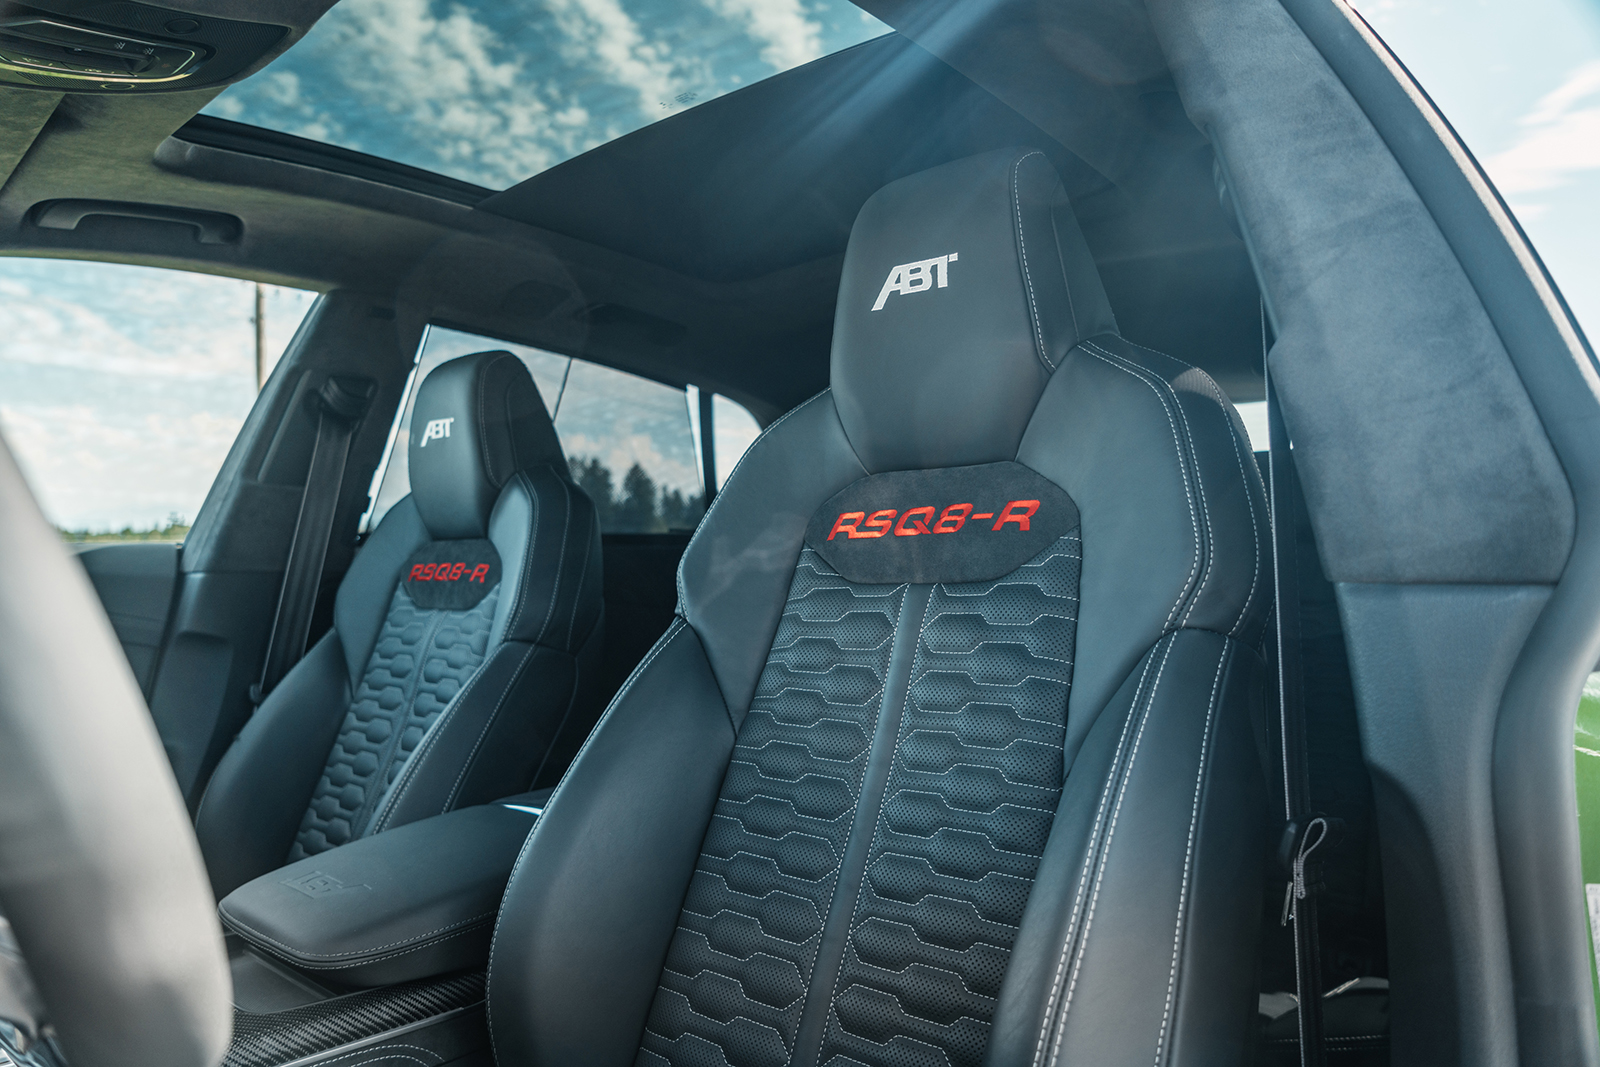 ABT_RSQ8-R_green_seats